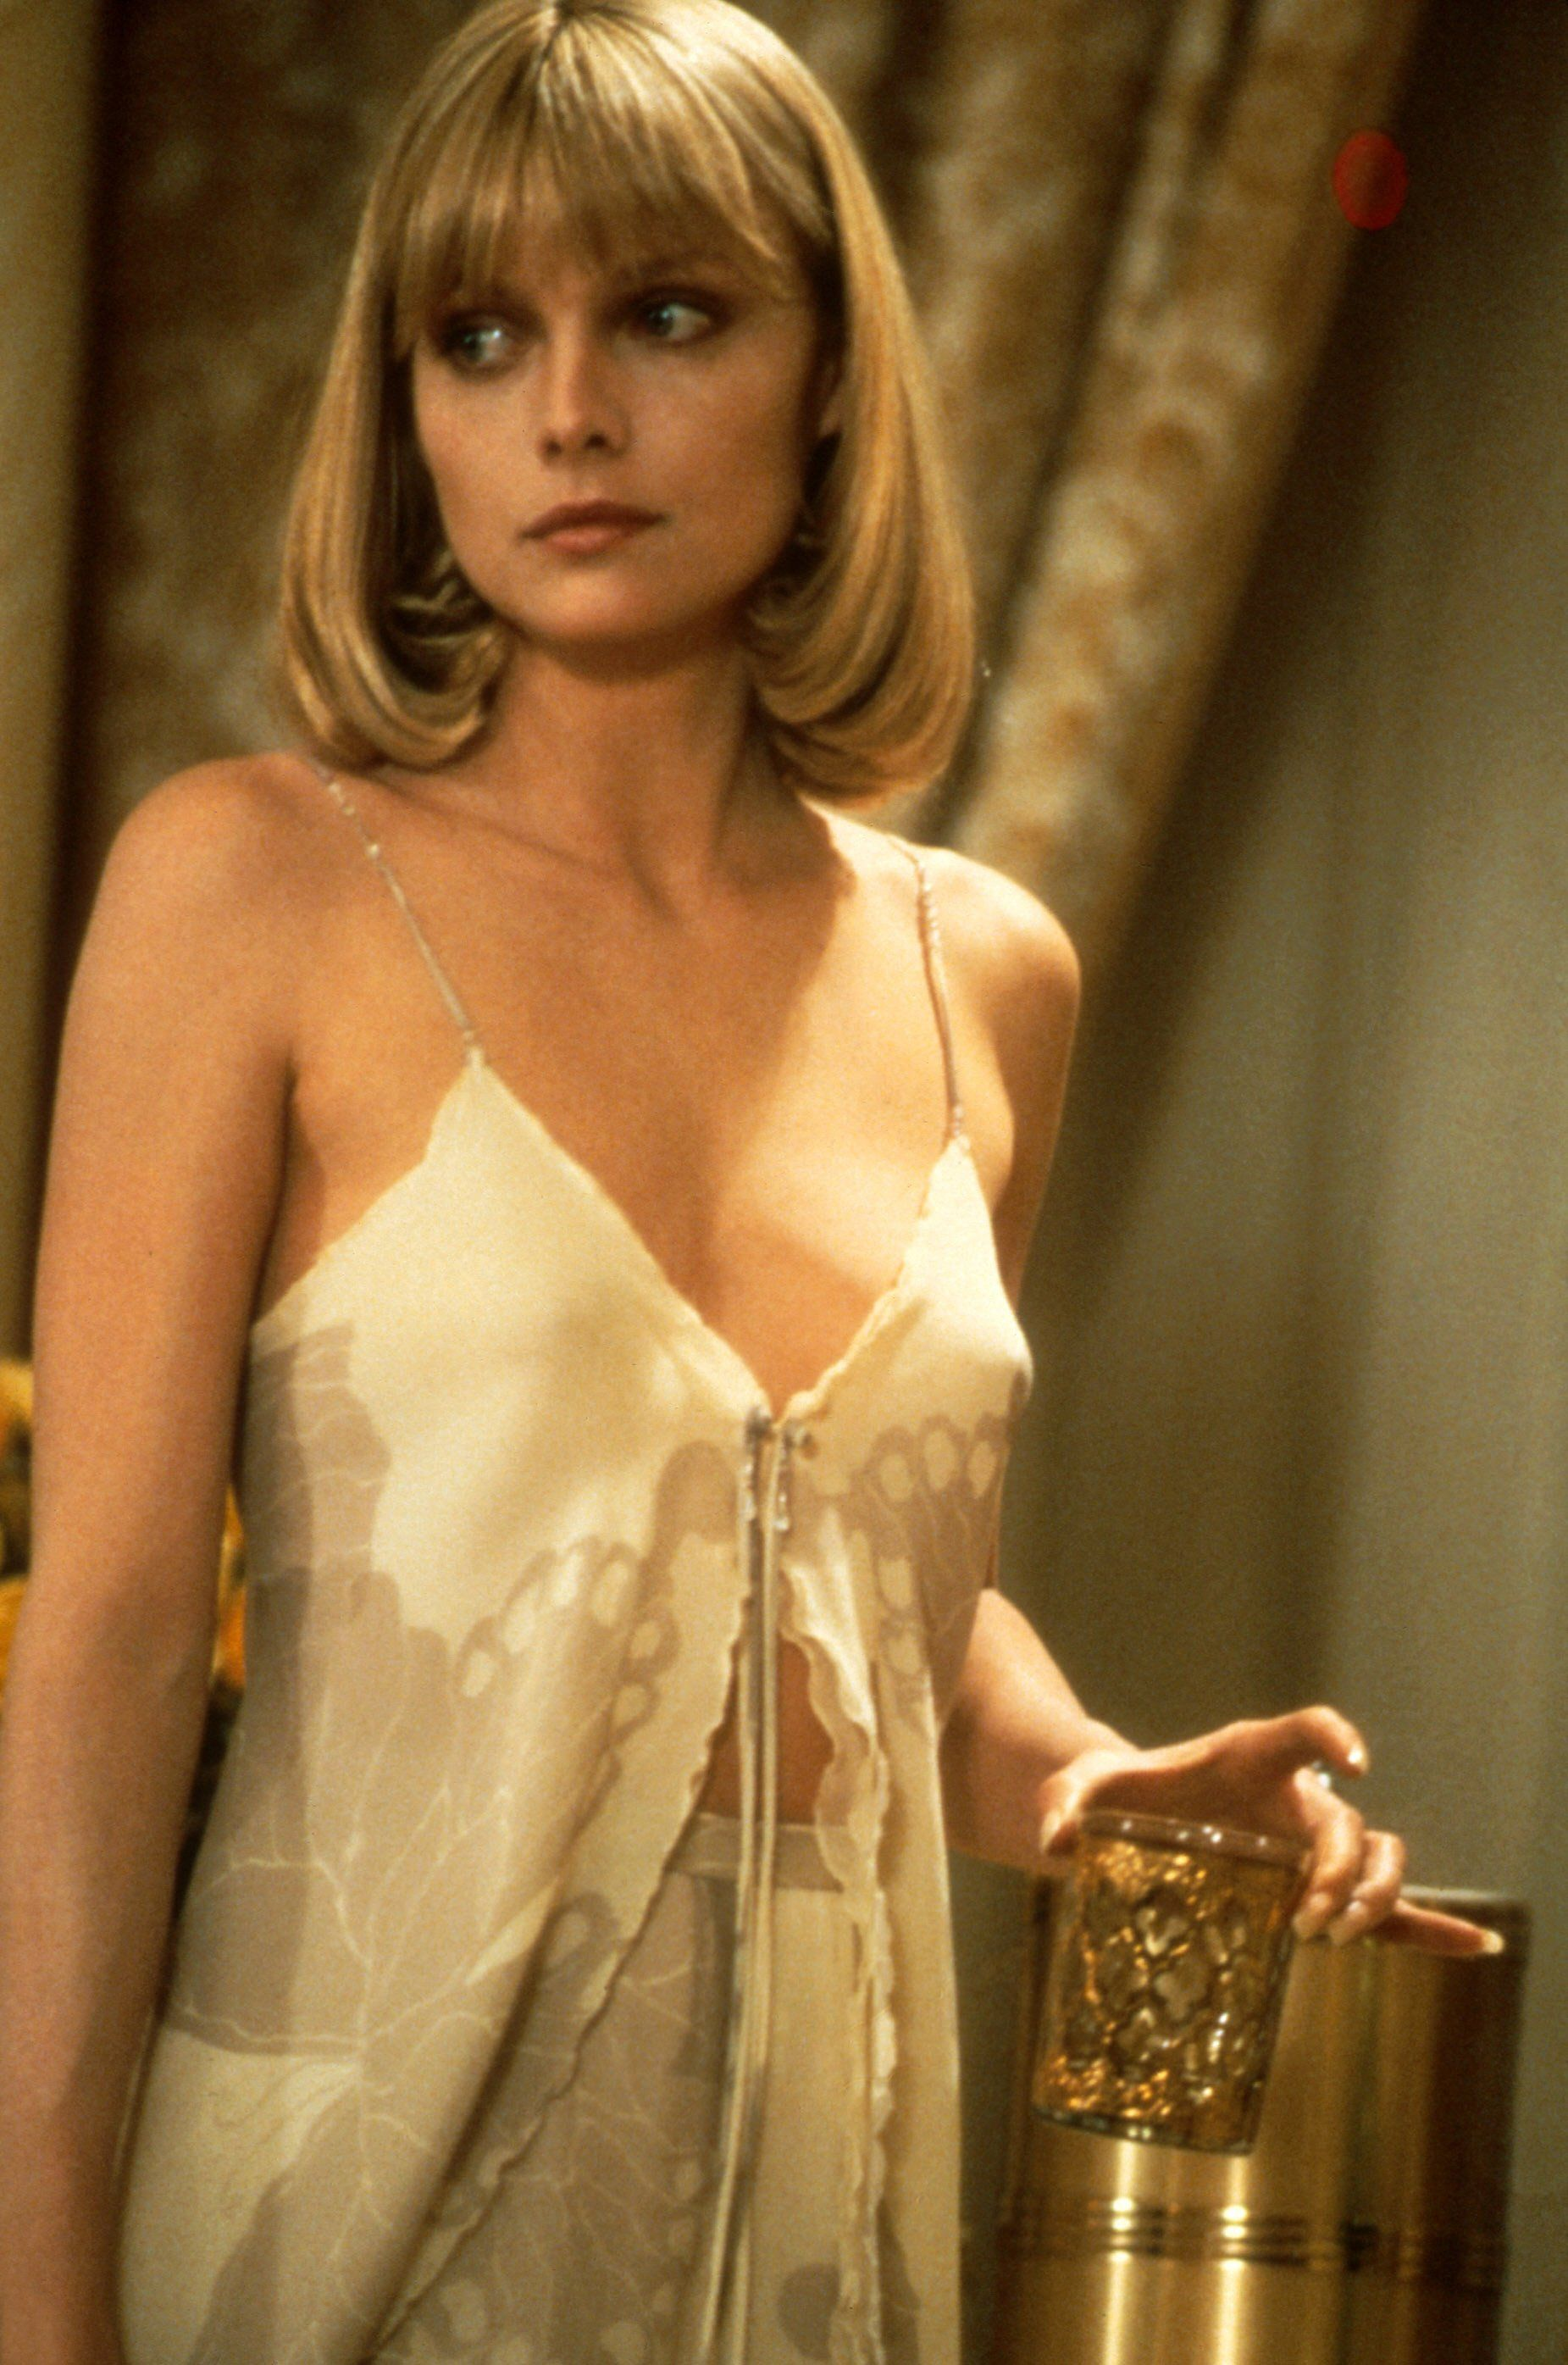 Allison Mack Nudography 56 hot pictures of sarah michelle gellar will slay you with